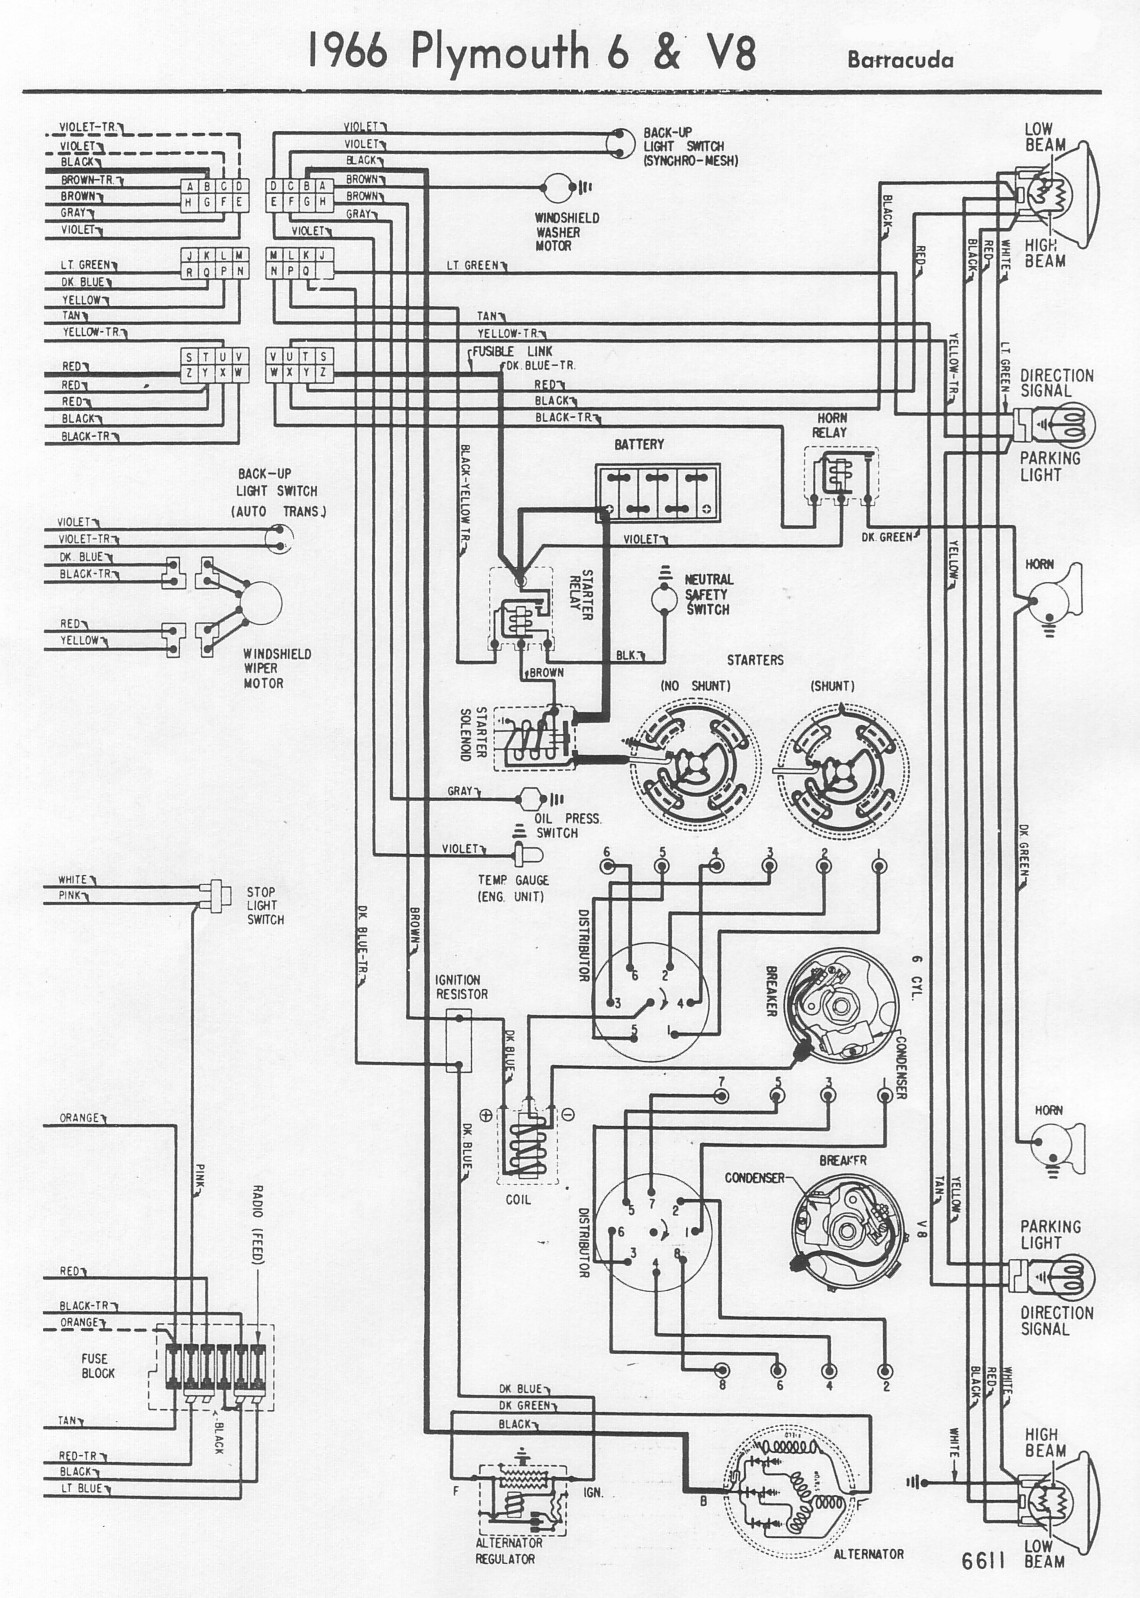 Diagram 2007 Chrysler 300c Wiring Diagram Full Version Hd Quality Wiring Diagram Fourwiring19 Lasagradellacastagna It